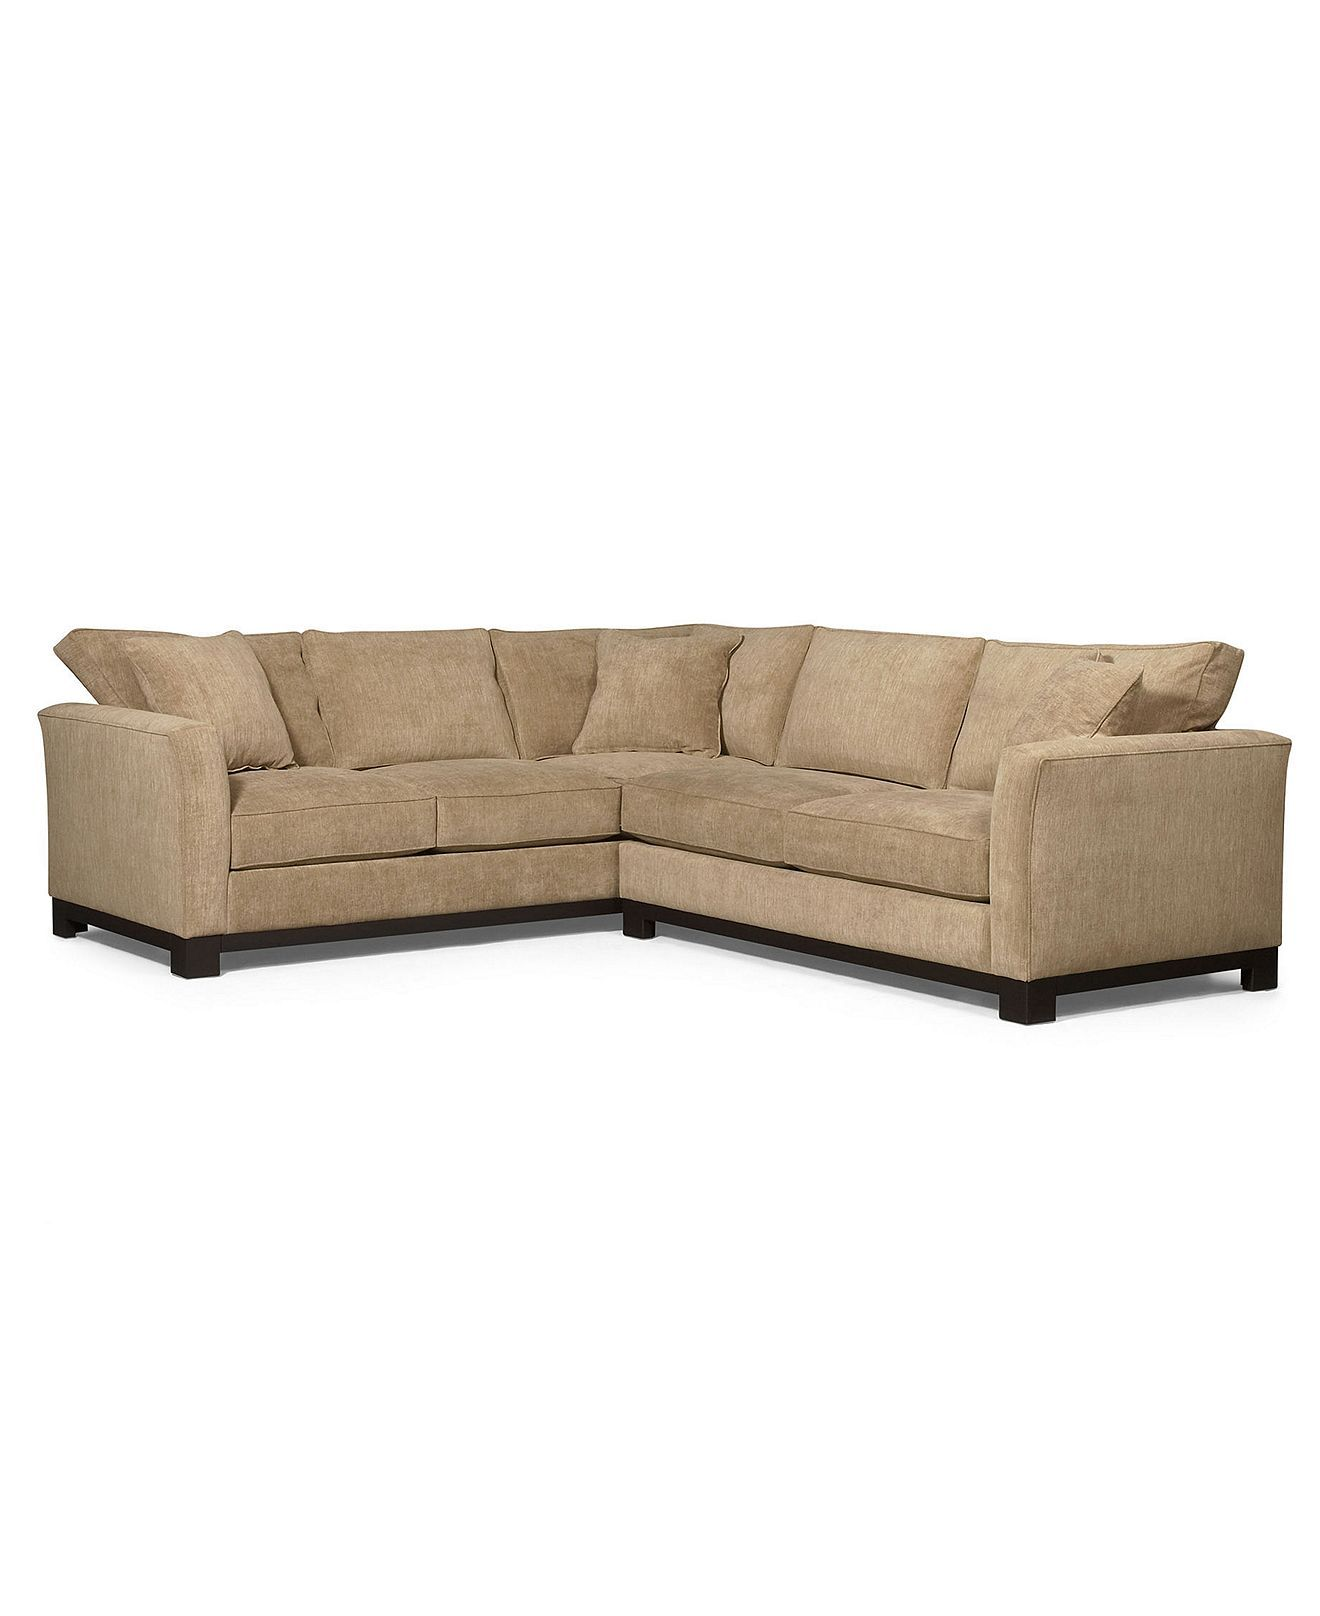 "Kenton Fabric Sectional Sofa 2 Piece 107""W x 94""D x 33""H"